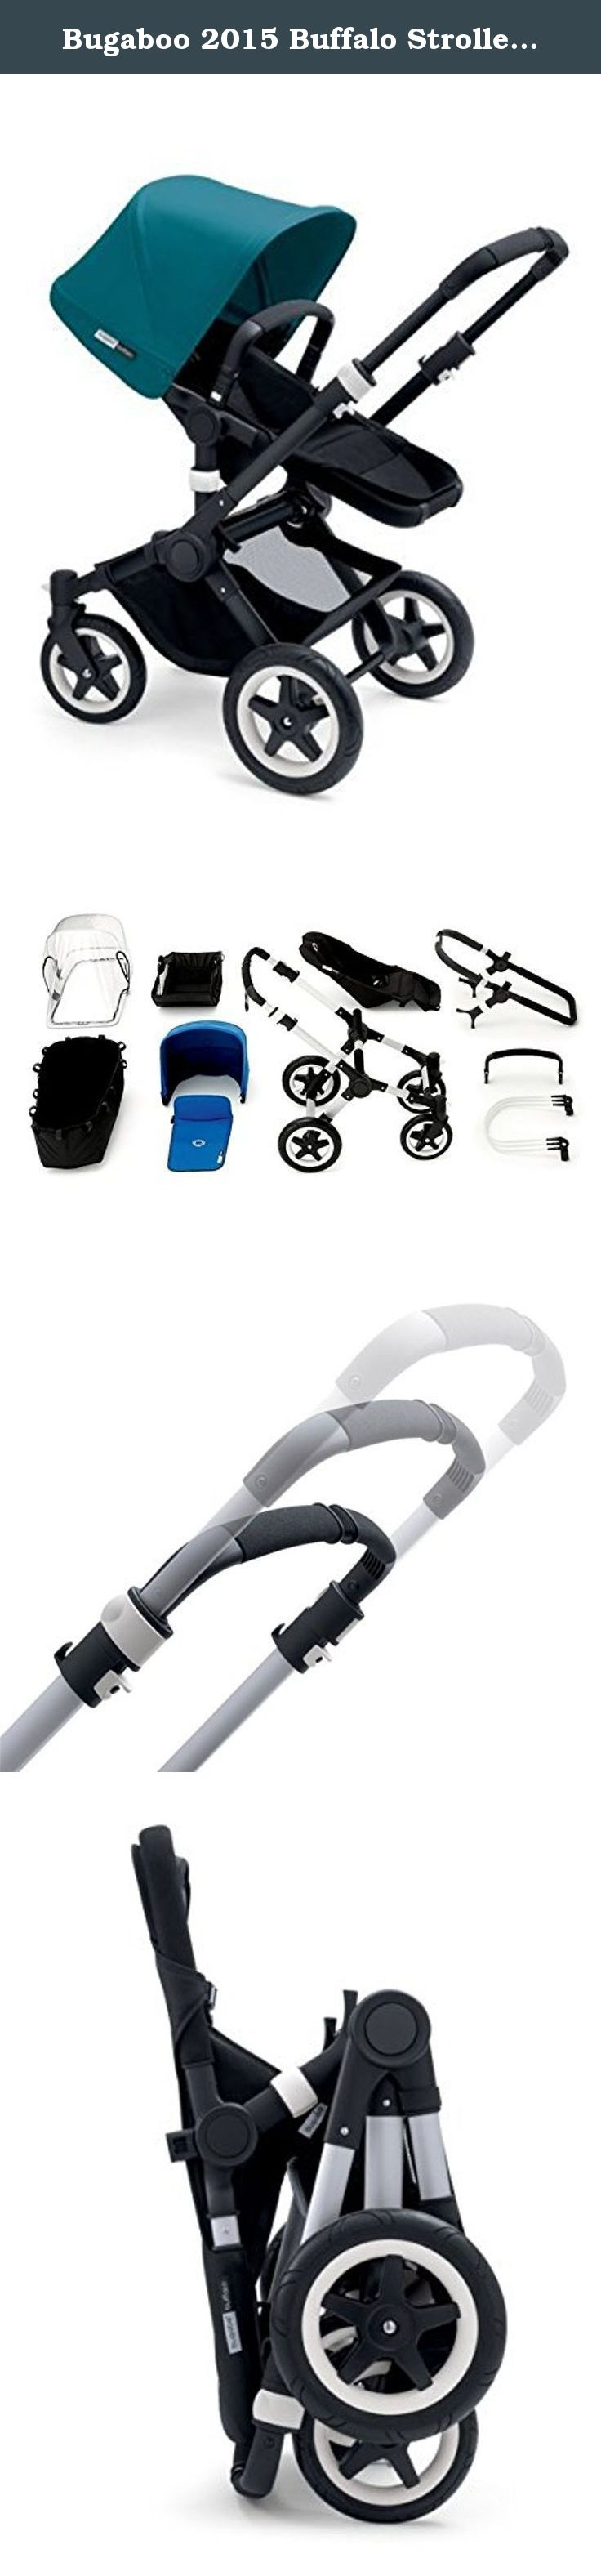 Bugaboo 2015 Buffalo Stroller Complete Set in Black on